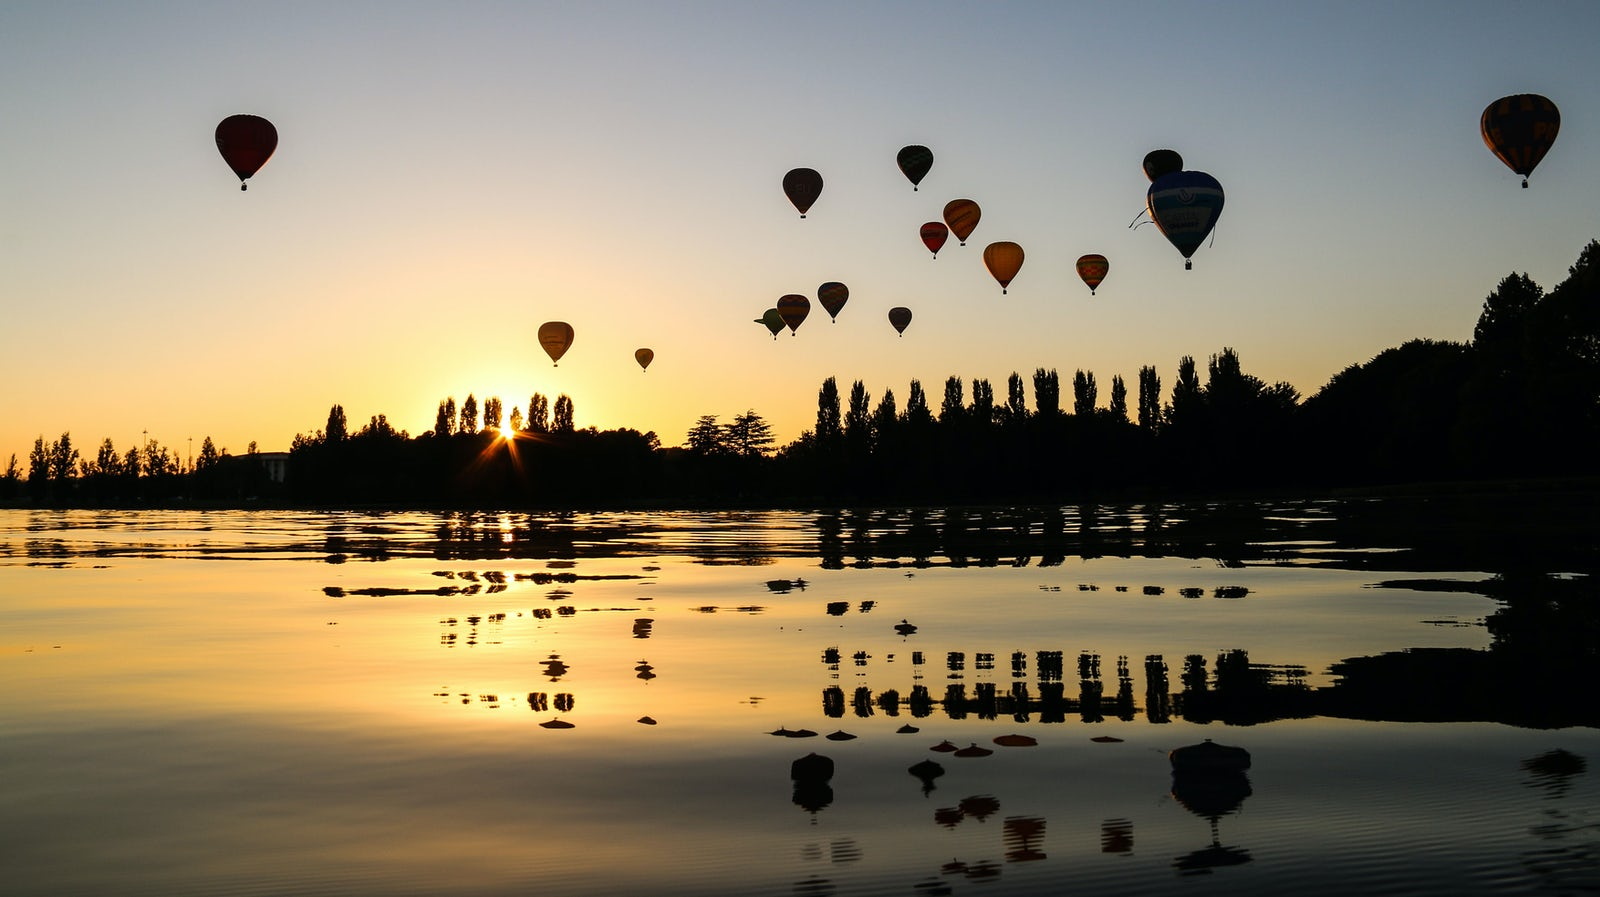 Hot Air Balloon of Lake Burley Griffin